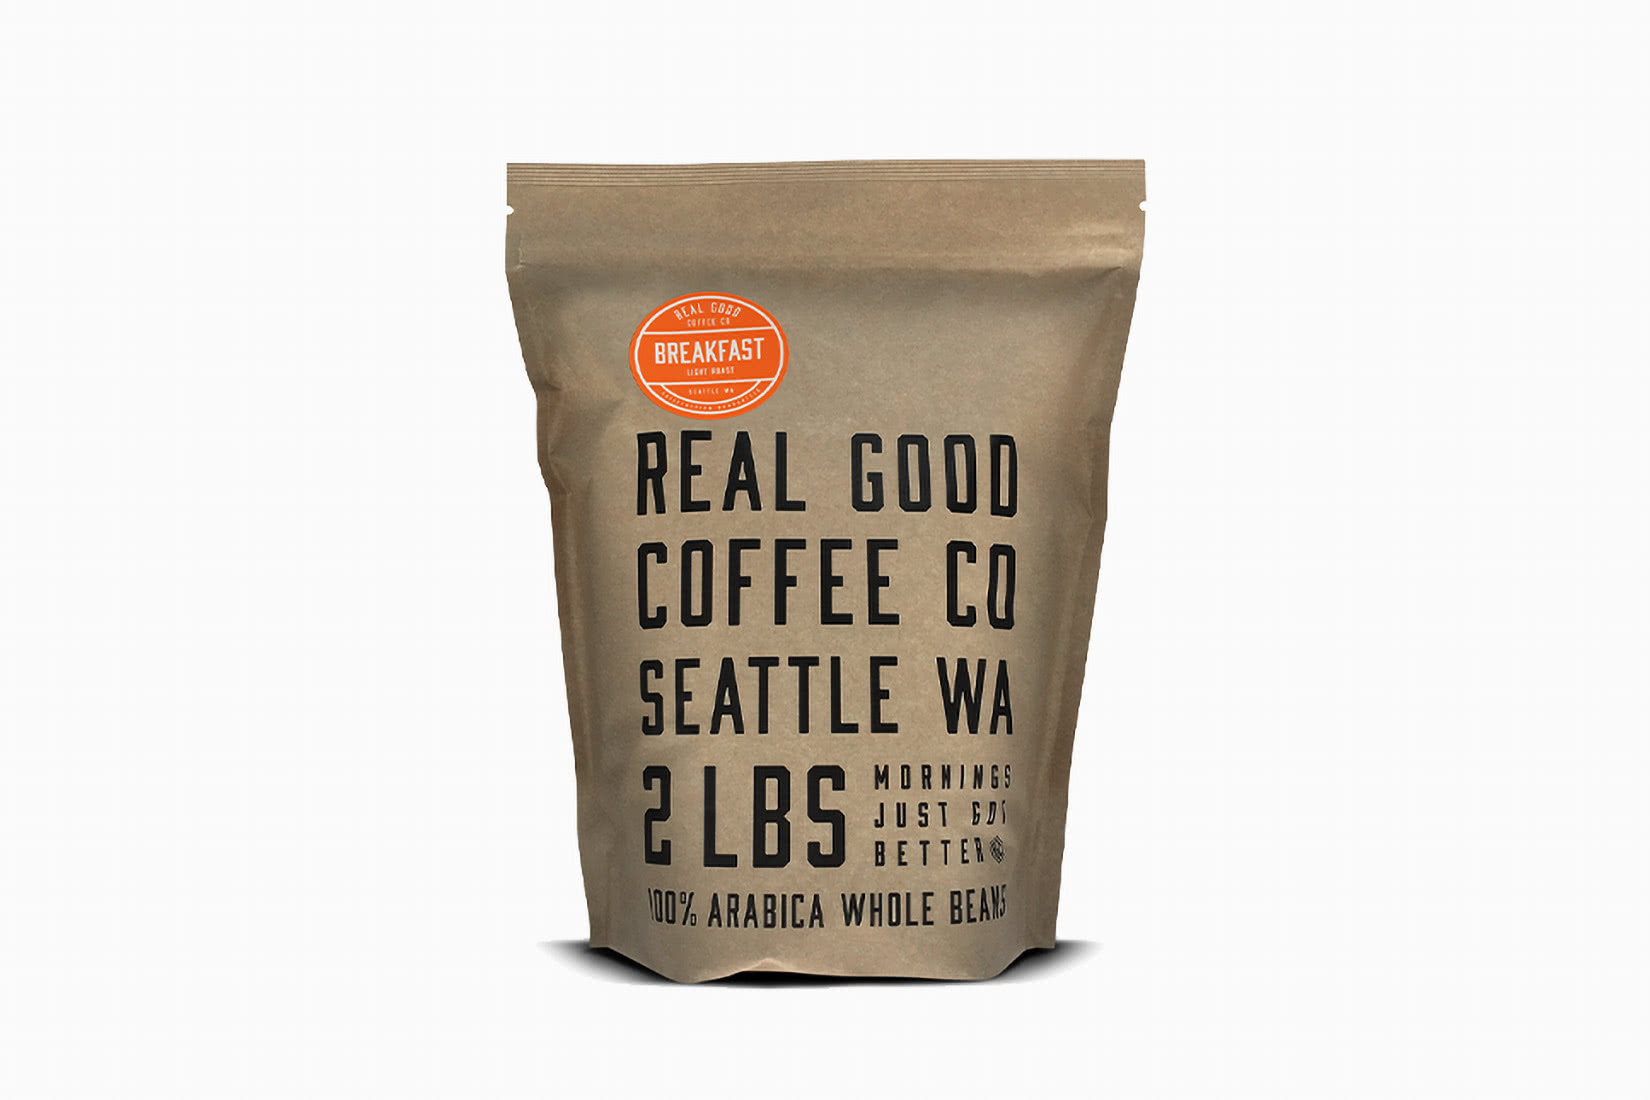 best coffee beans brands budget real good review - Luxe Digital